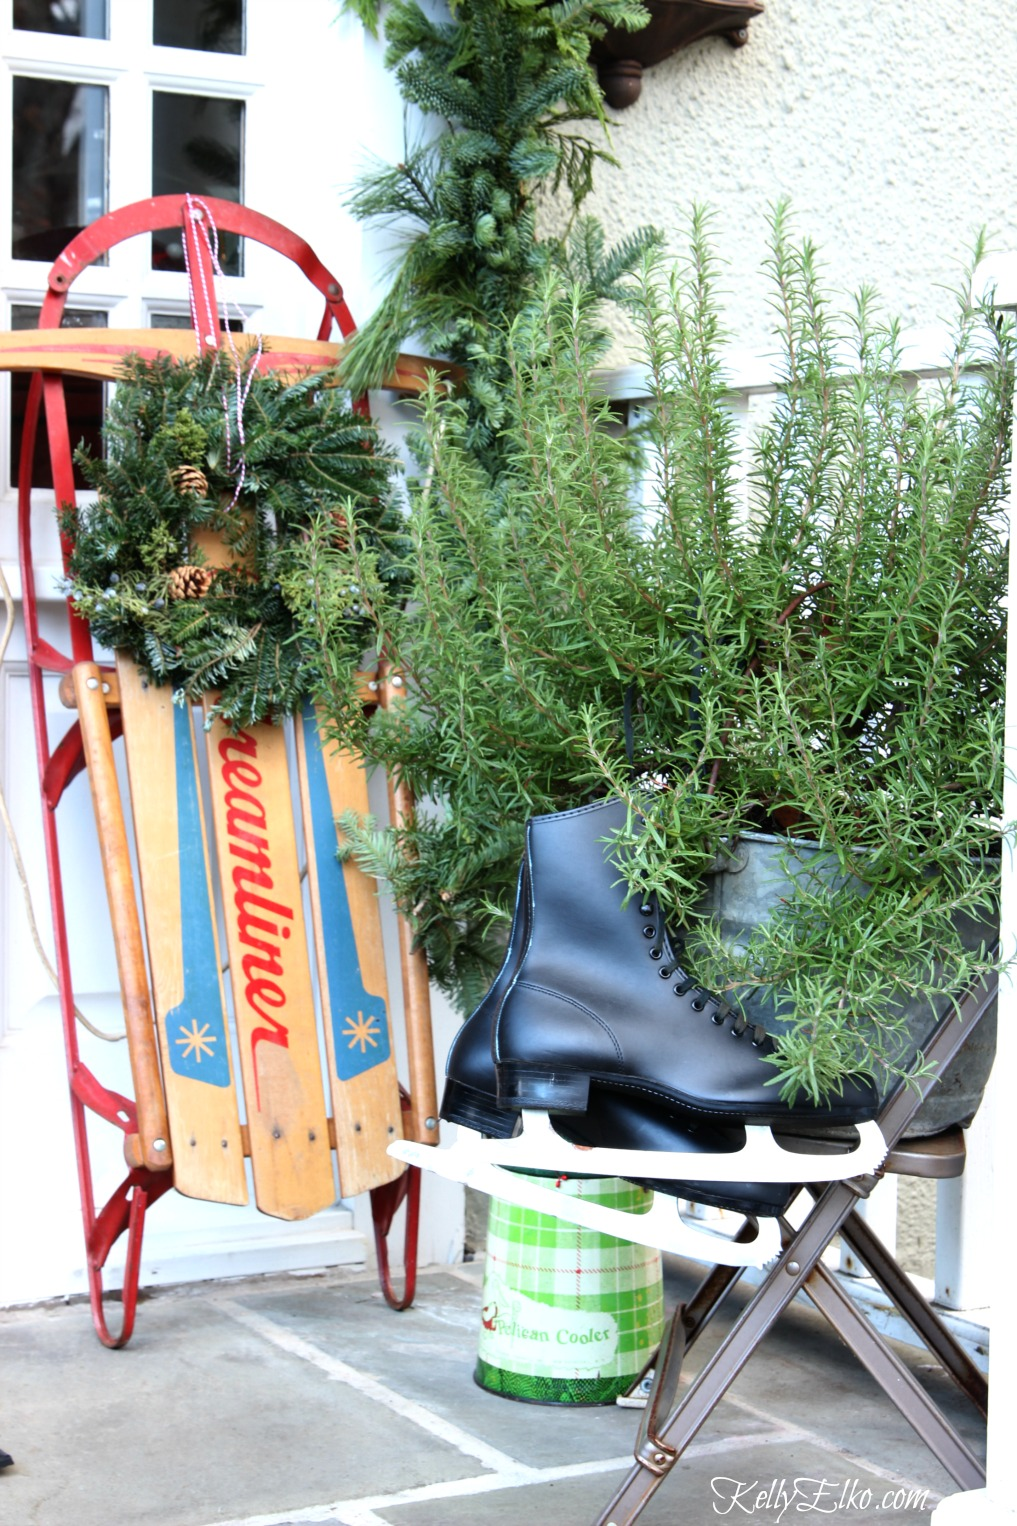 Christmas porch with vintage finds like the old sled, ice skates, metal chair and plaid cooler kellyelko.com #christmasporch #outdoorchristmasdecor #vintagechristmas #sled #kellyelko